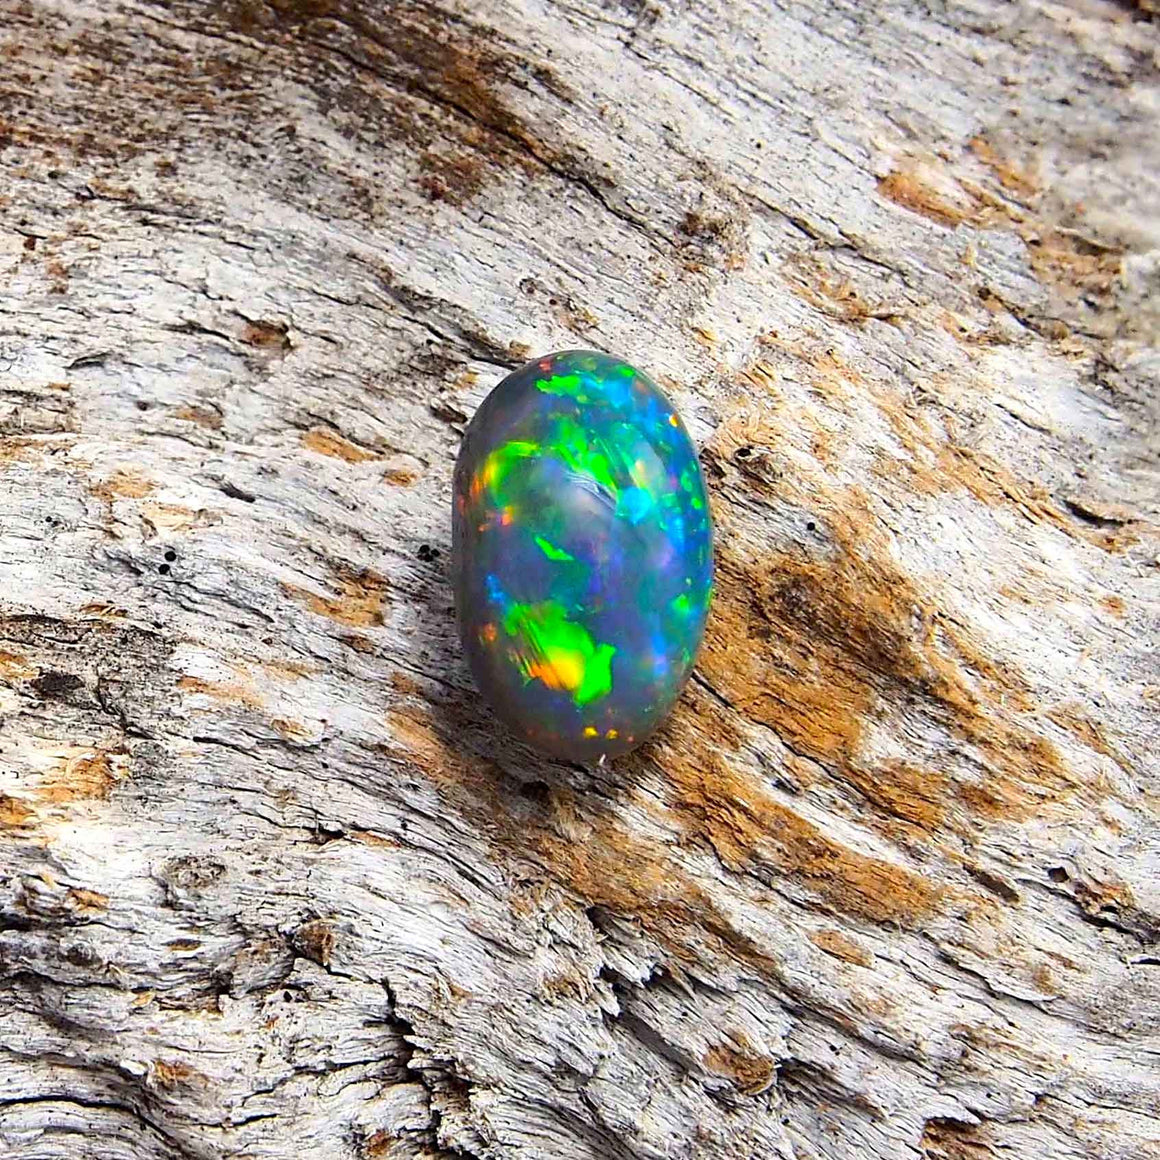 Colourful floral patterned oval Lightning Ridge solid semi-black opal with blue body tone and green and orange highlights, ideal for a ring or necklace pendant setting